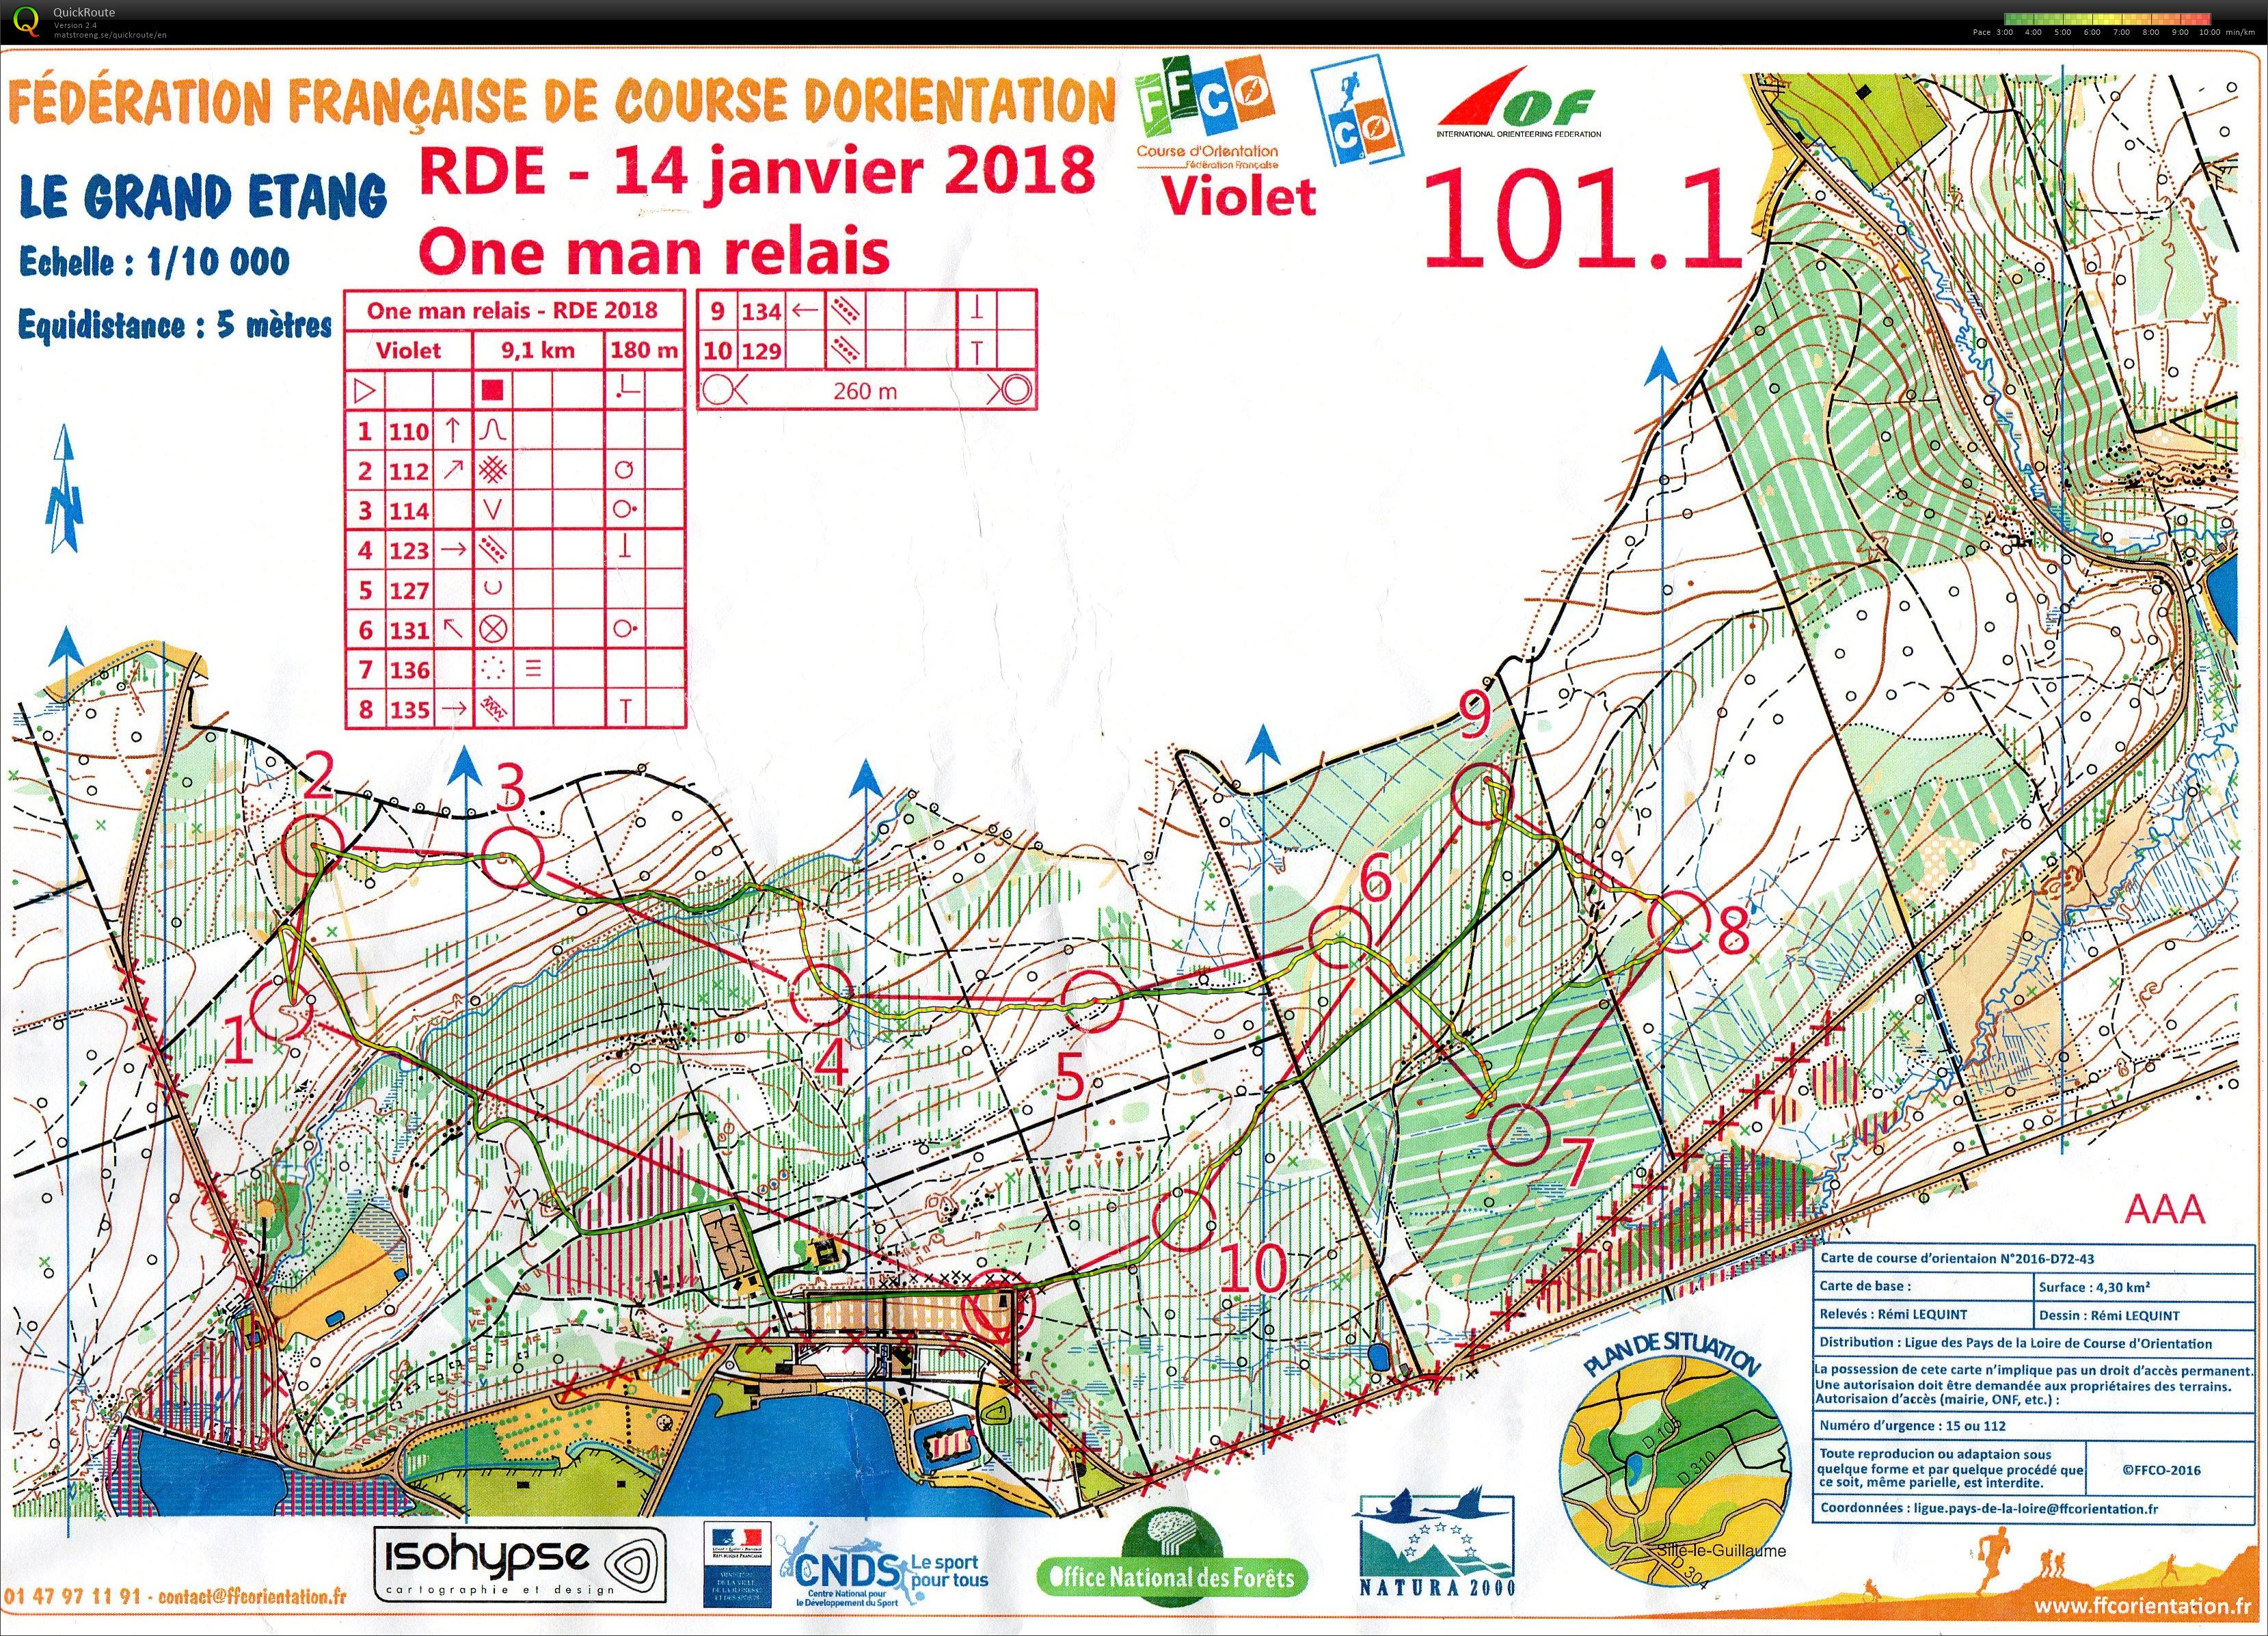 Carte 1 one-man relais RDE Sillé le Guillaume (14-01-2018)